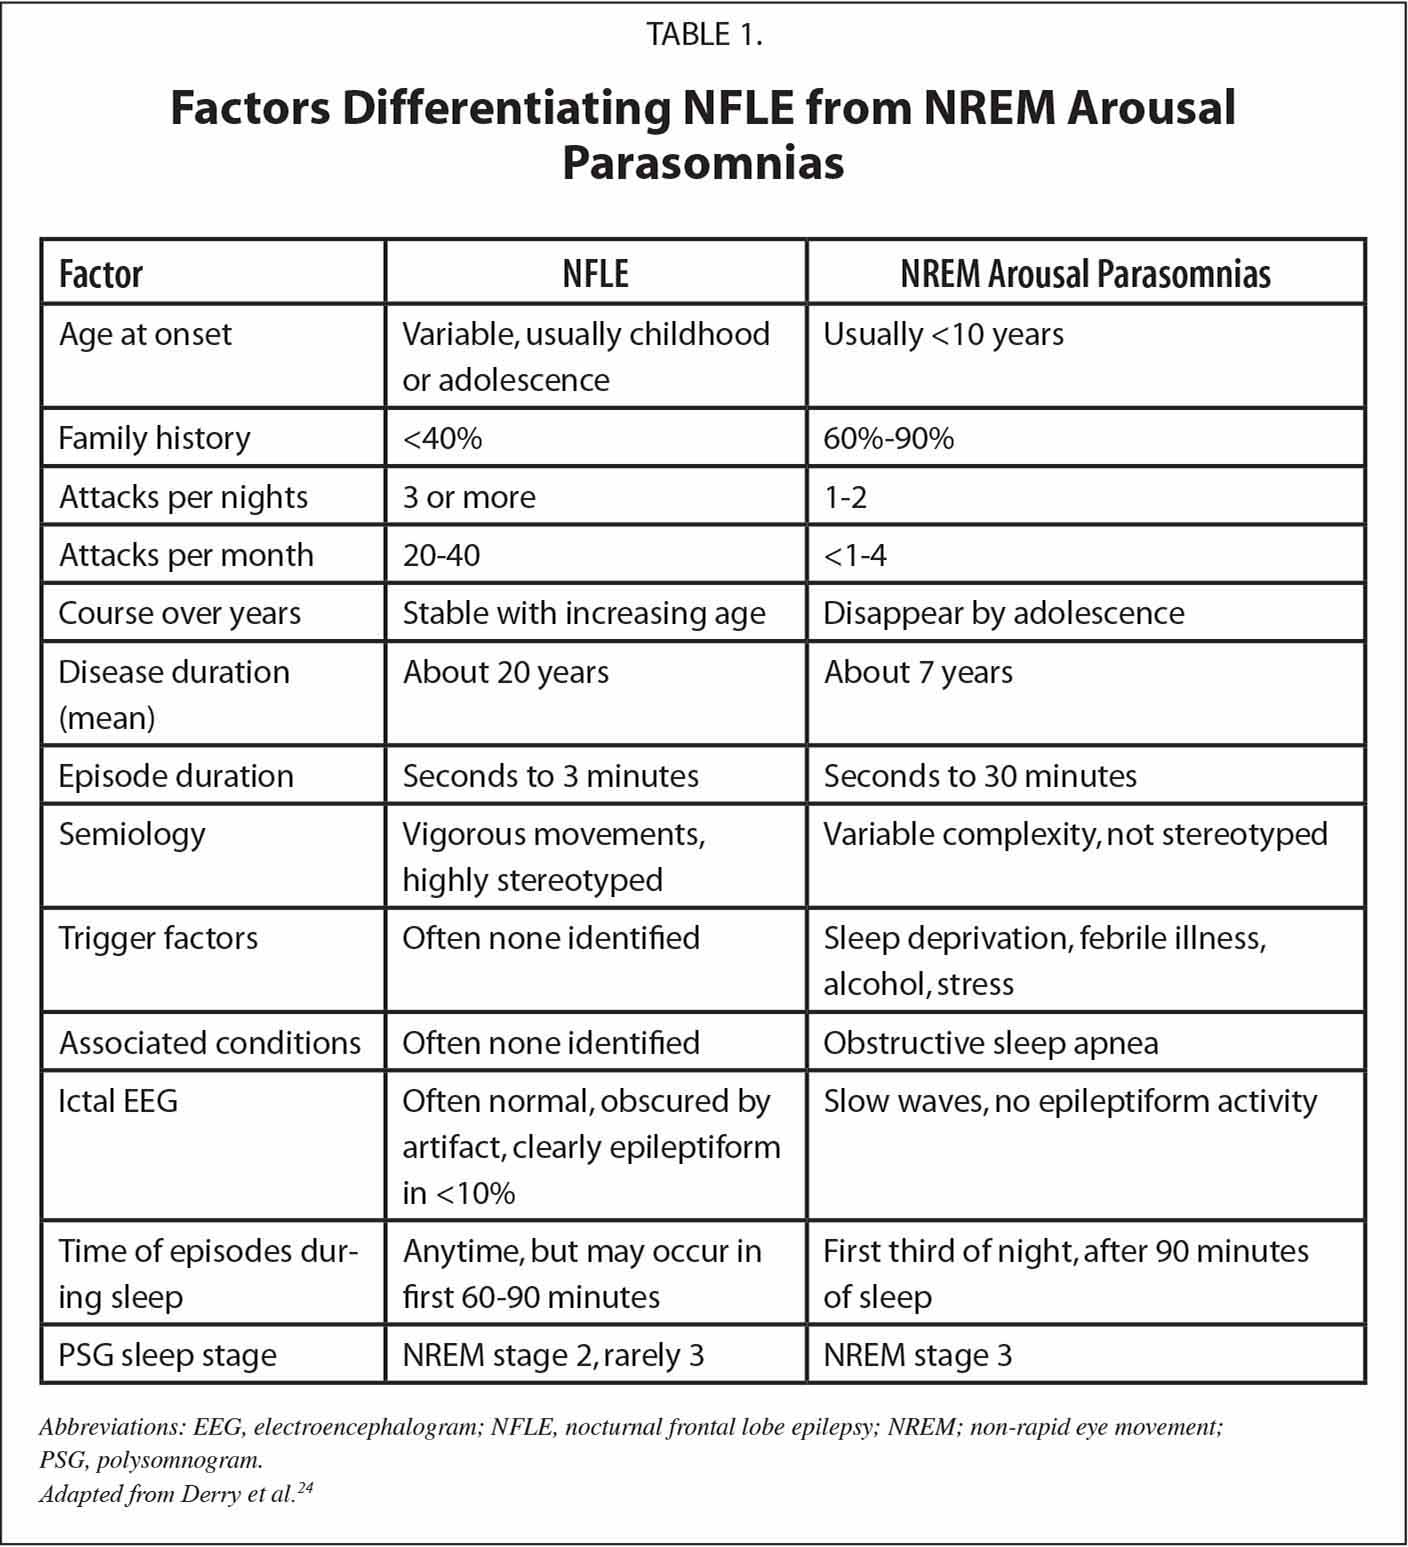 Factors Differentiating NFLE from NREM Arousal Parasomnias